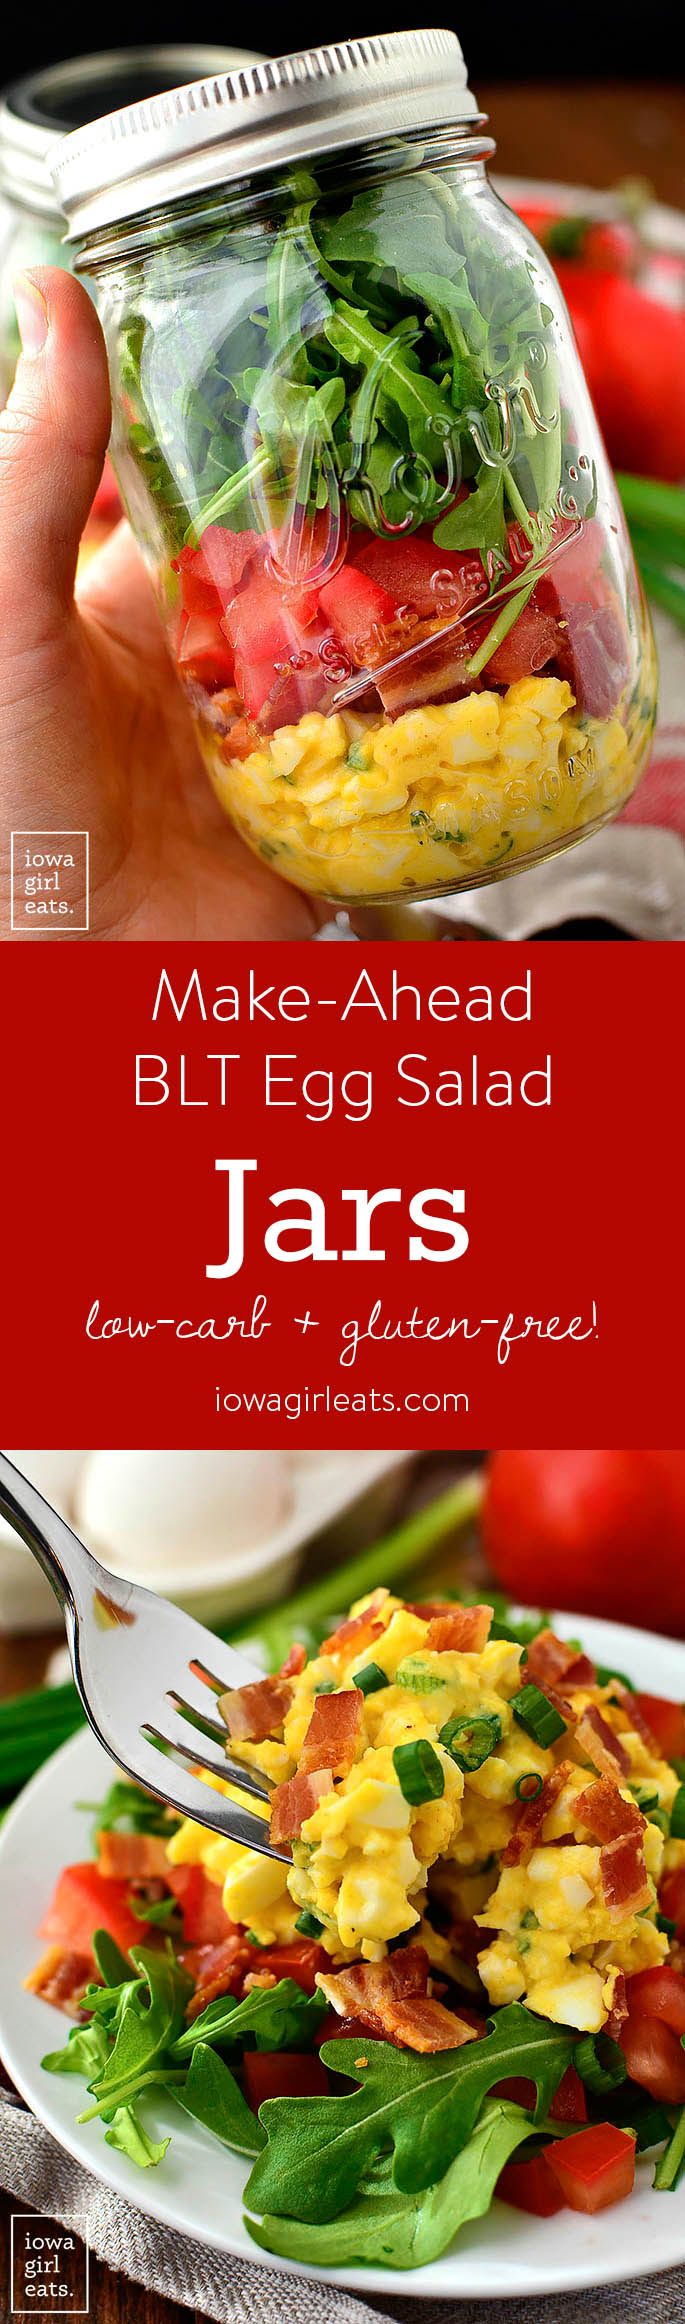 BLT Egg Salad Jars are SO easy and delicious, plus they're packed with protein and fresh vegetables. Assemble for grab-and-go gluten-free lunches throughout the week! | iowagirleats.com